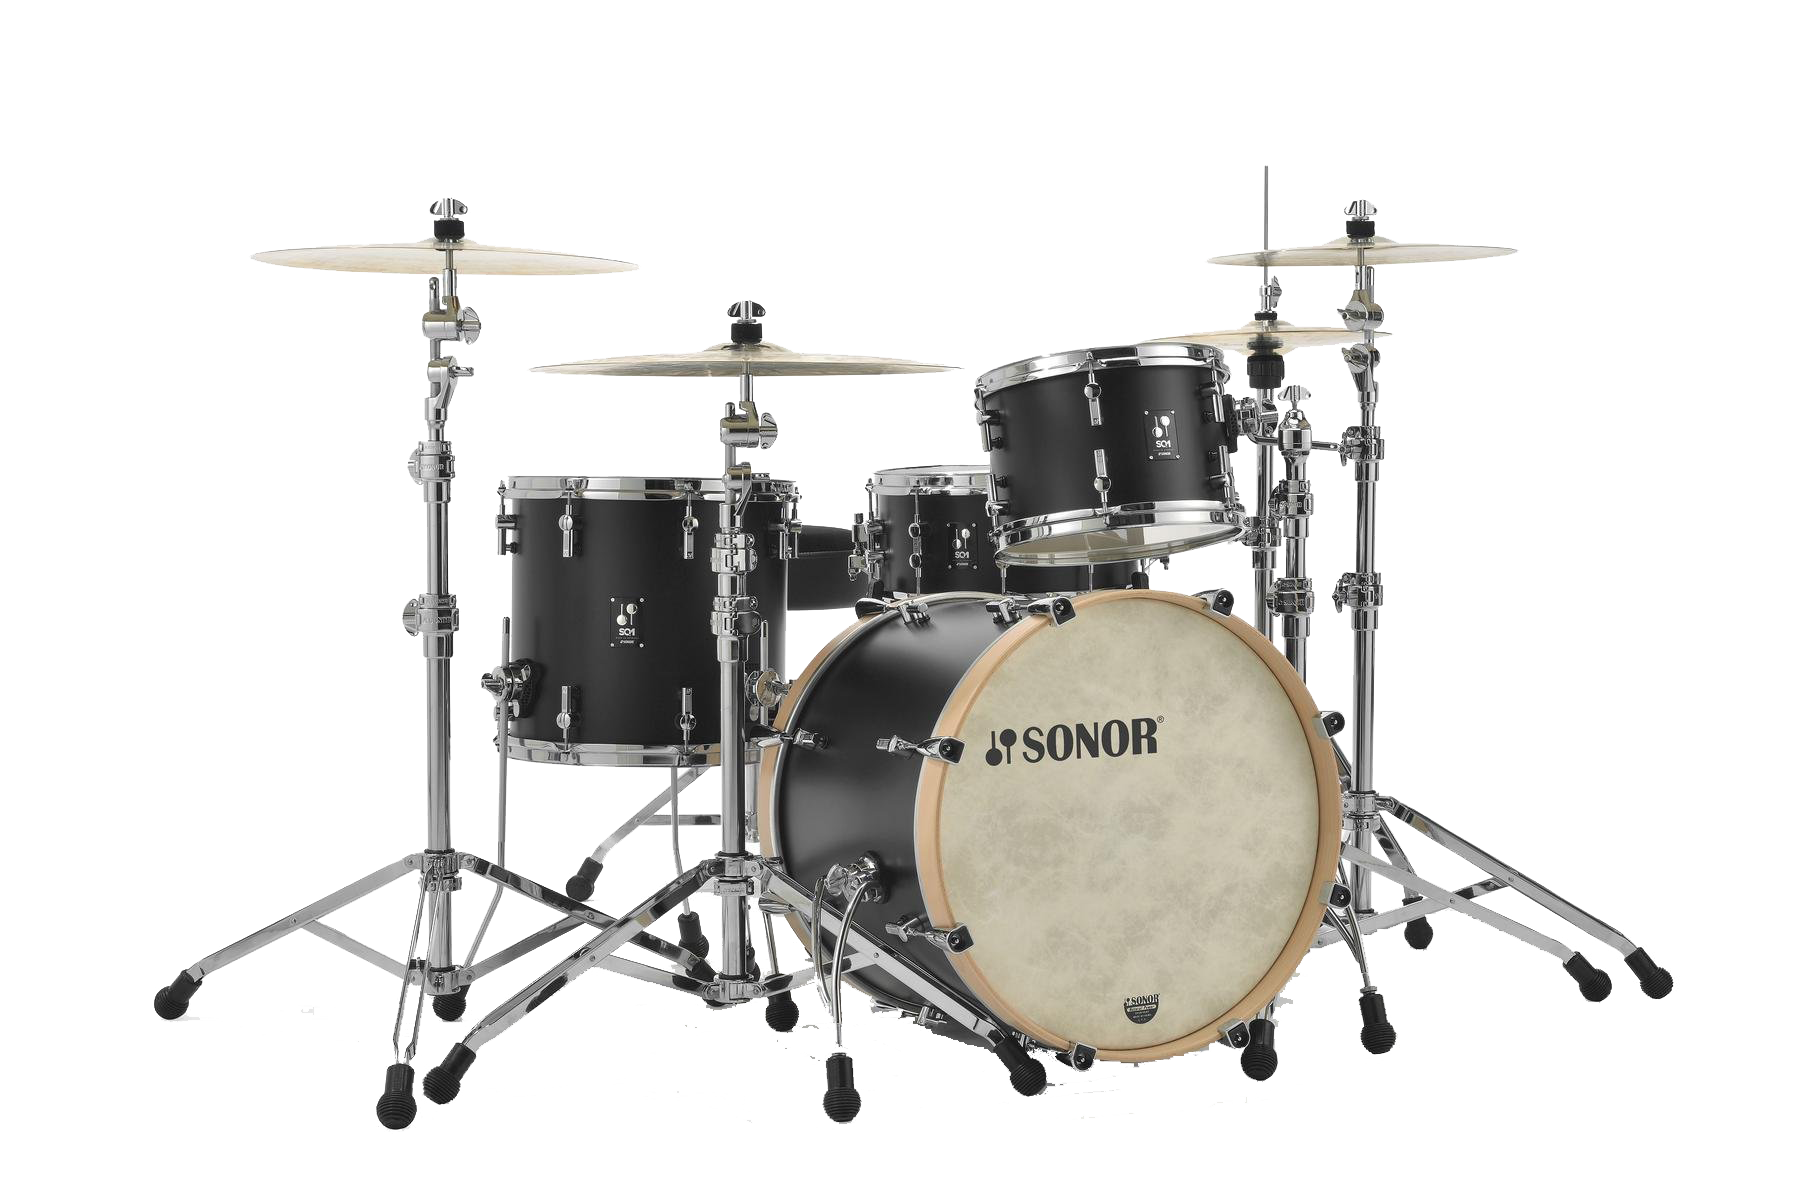 acoustic drum kits sonor sq1 22 39 39 3 piece shell pack gt black. Black Bedroom Furniture Sets. Home Design Ideas